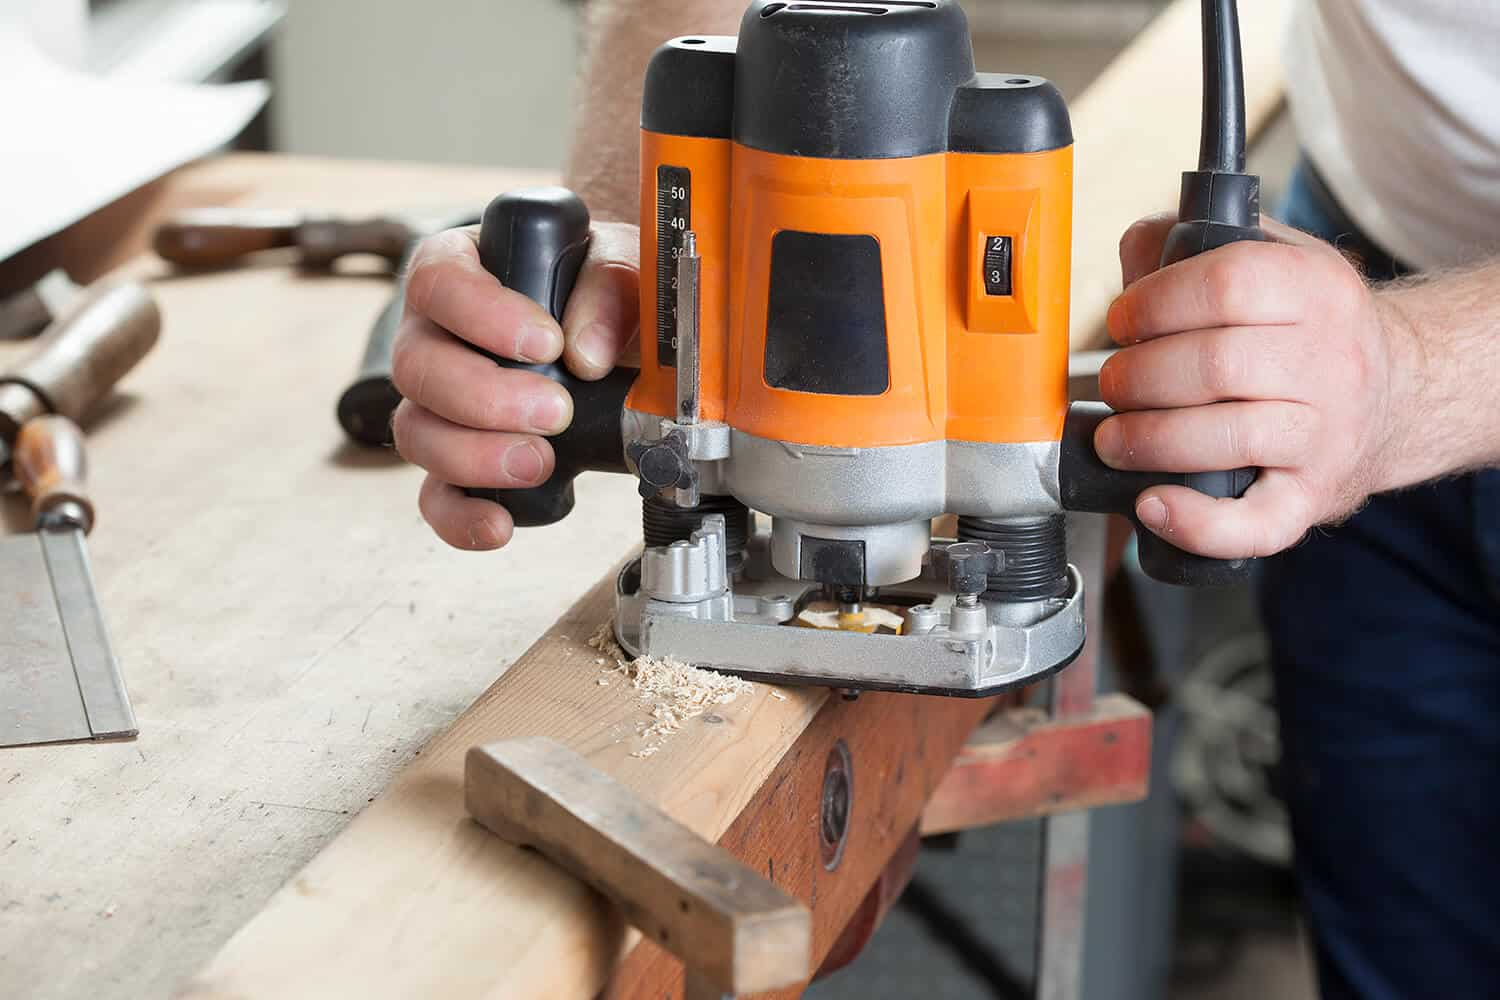 How to Use a Router for Woodworking - To Start